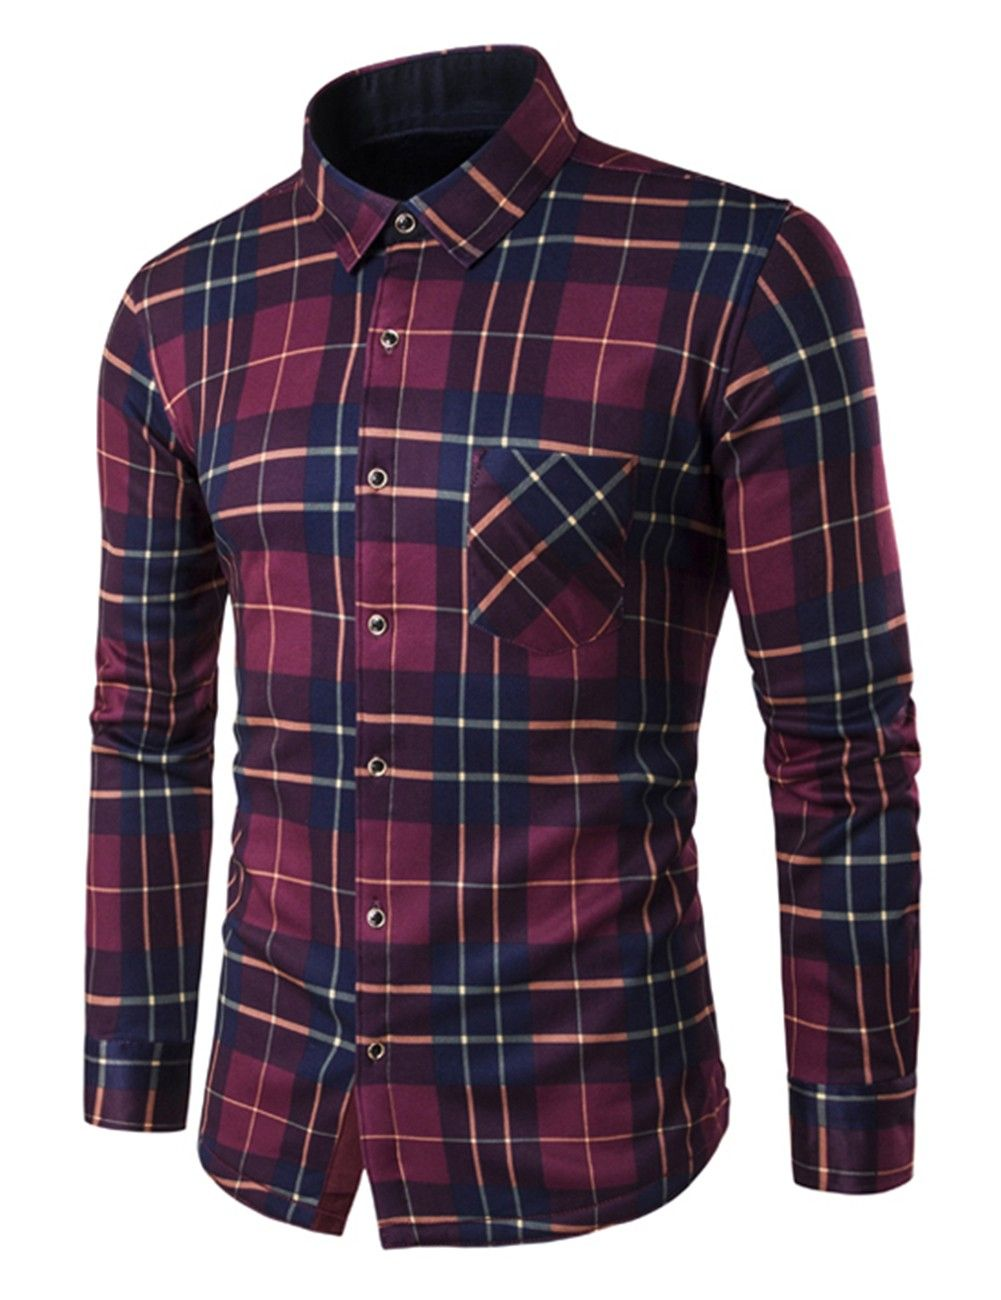 Fleece vs flannel  Men Fleece Lining Casual Plaid Long Sleeve Shirt Thermal Flannel